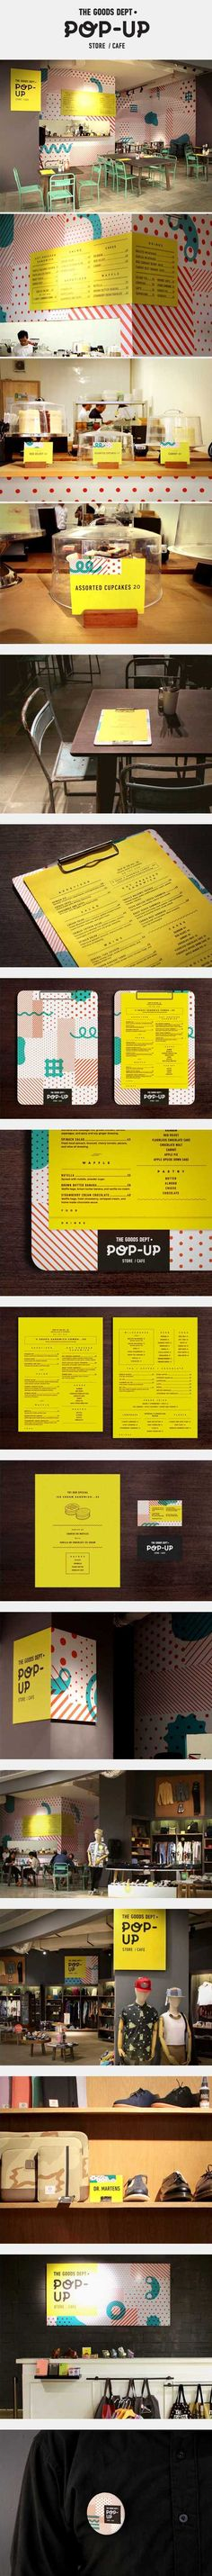 Pop Up Shop Design / Retail Design / Semi Permanent Retail Fixtures / VM / Retail Display / The Goods Dept Pop-Up Store/Cafe on Behance Corporate Design, Graphic Design Branding, Identity Design, Retail Design, Brand Identity, Signage Design, Menu Design, Cafe Design, Store Design